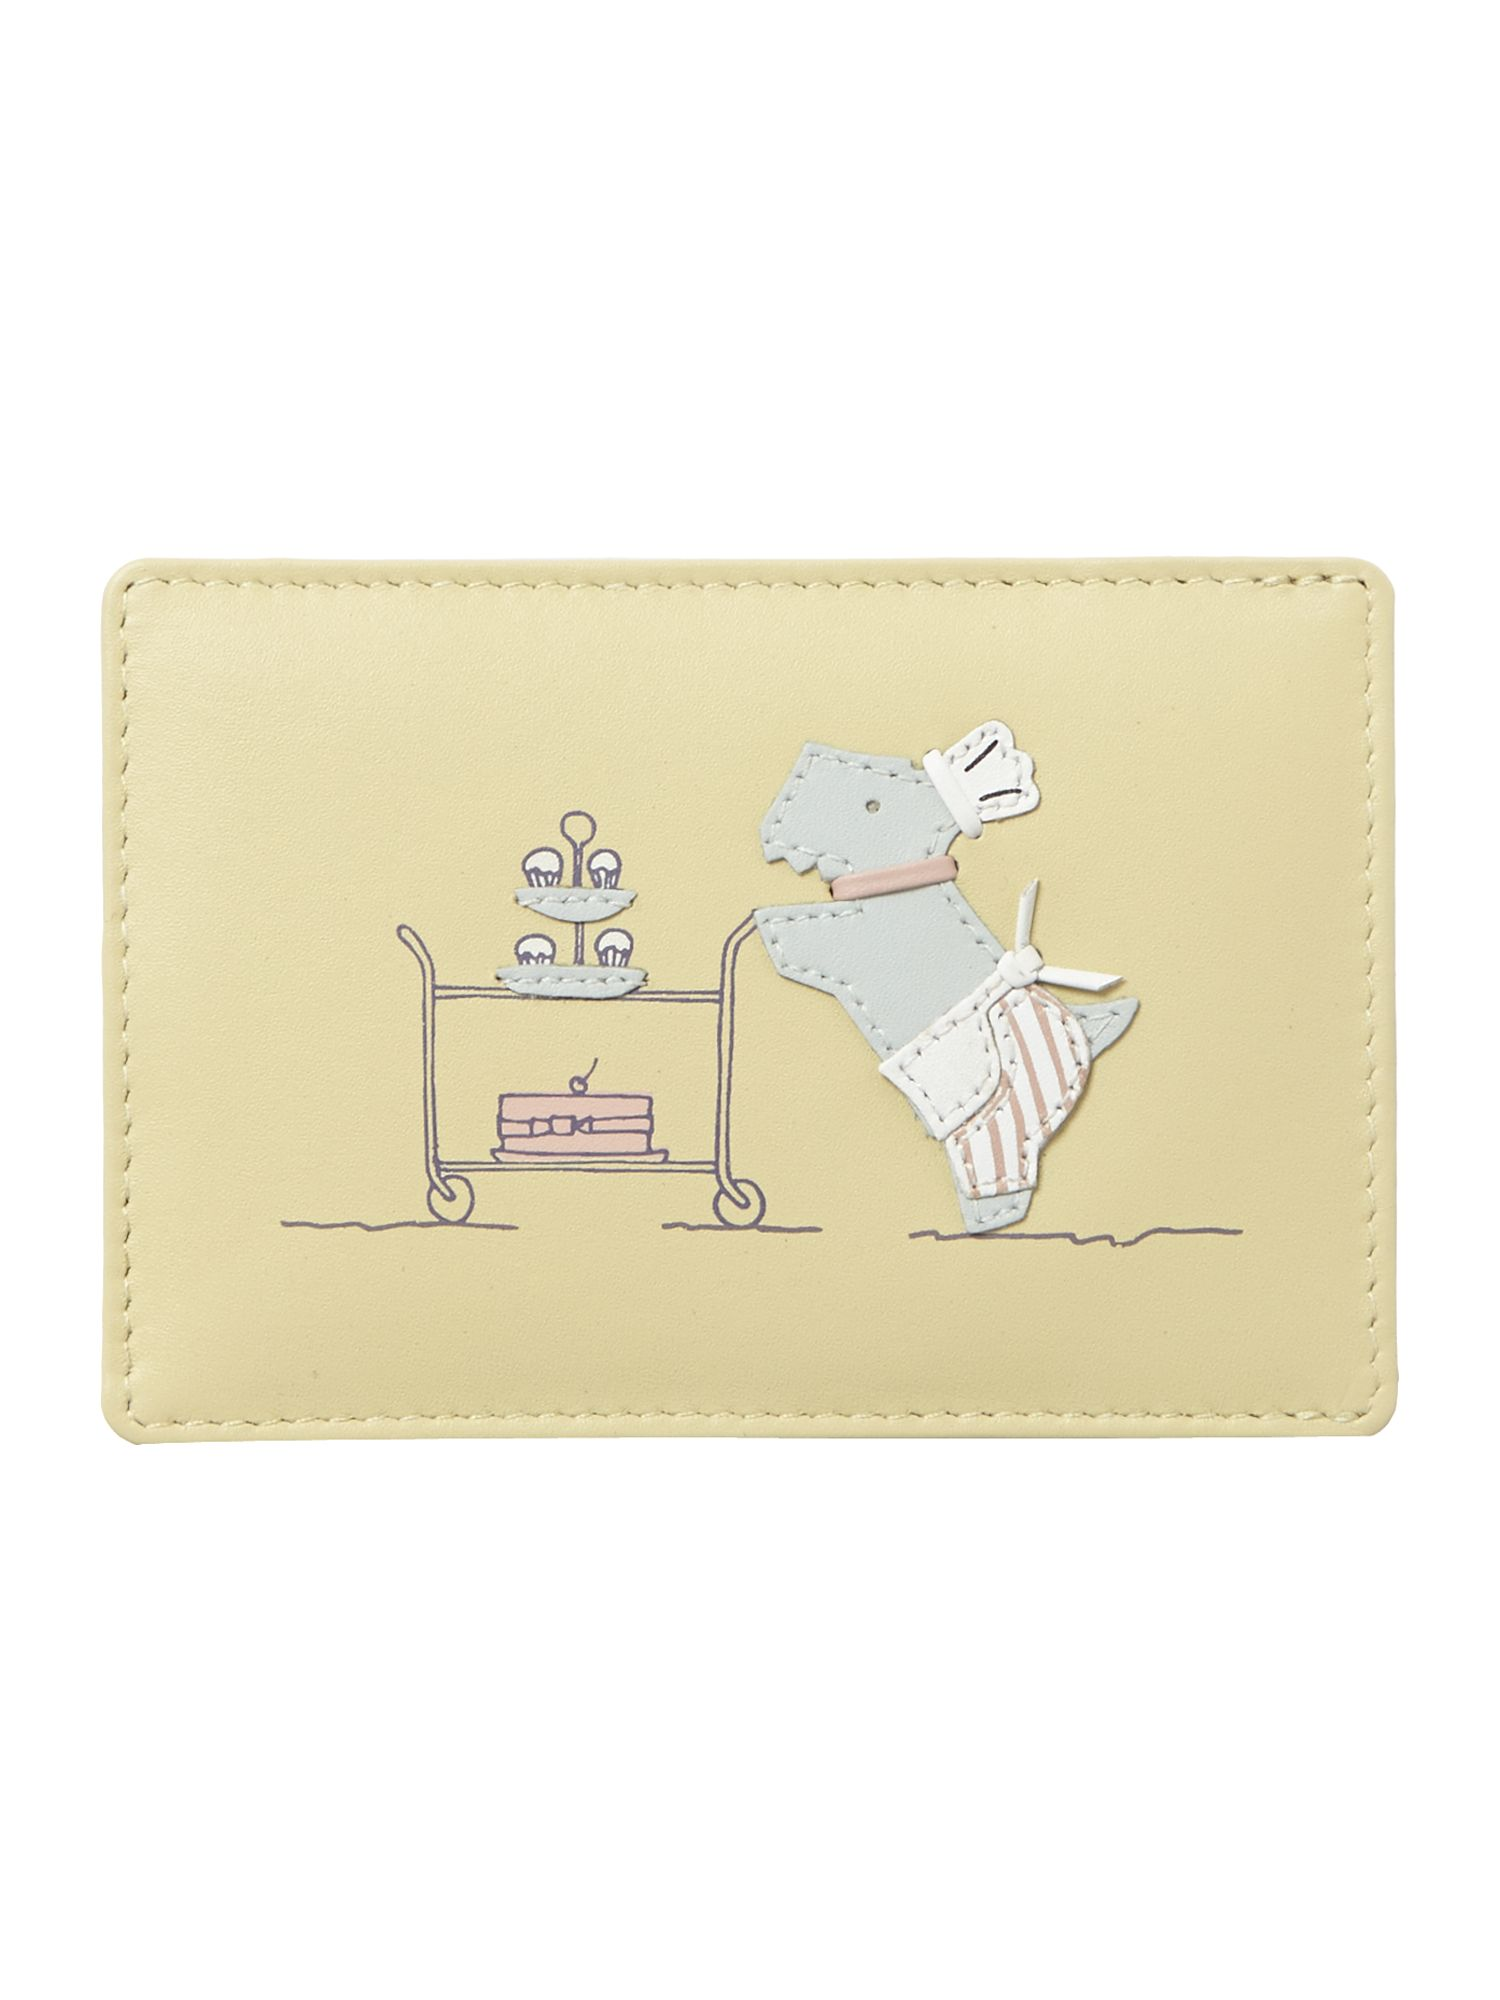 Patisserie Raderlie yellow travel card holder